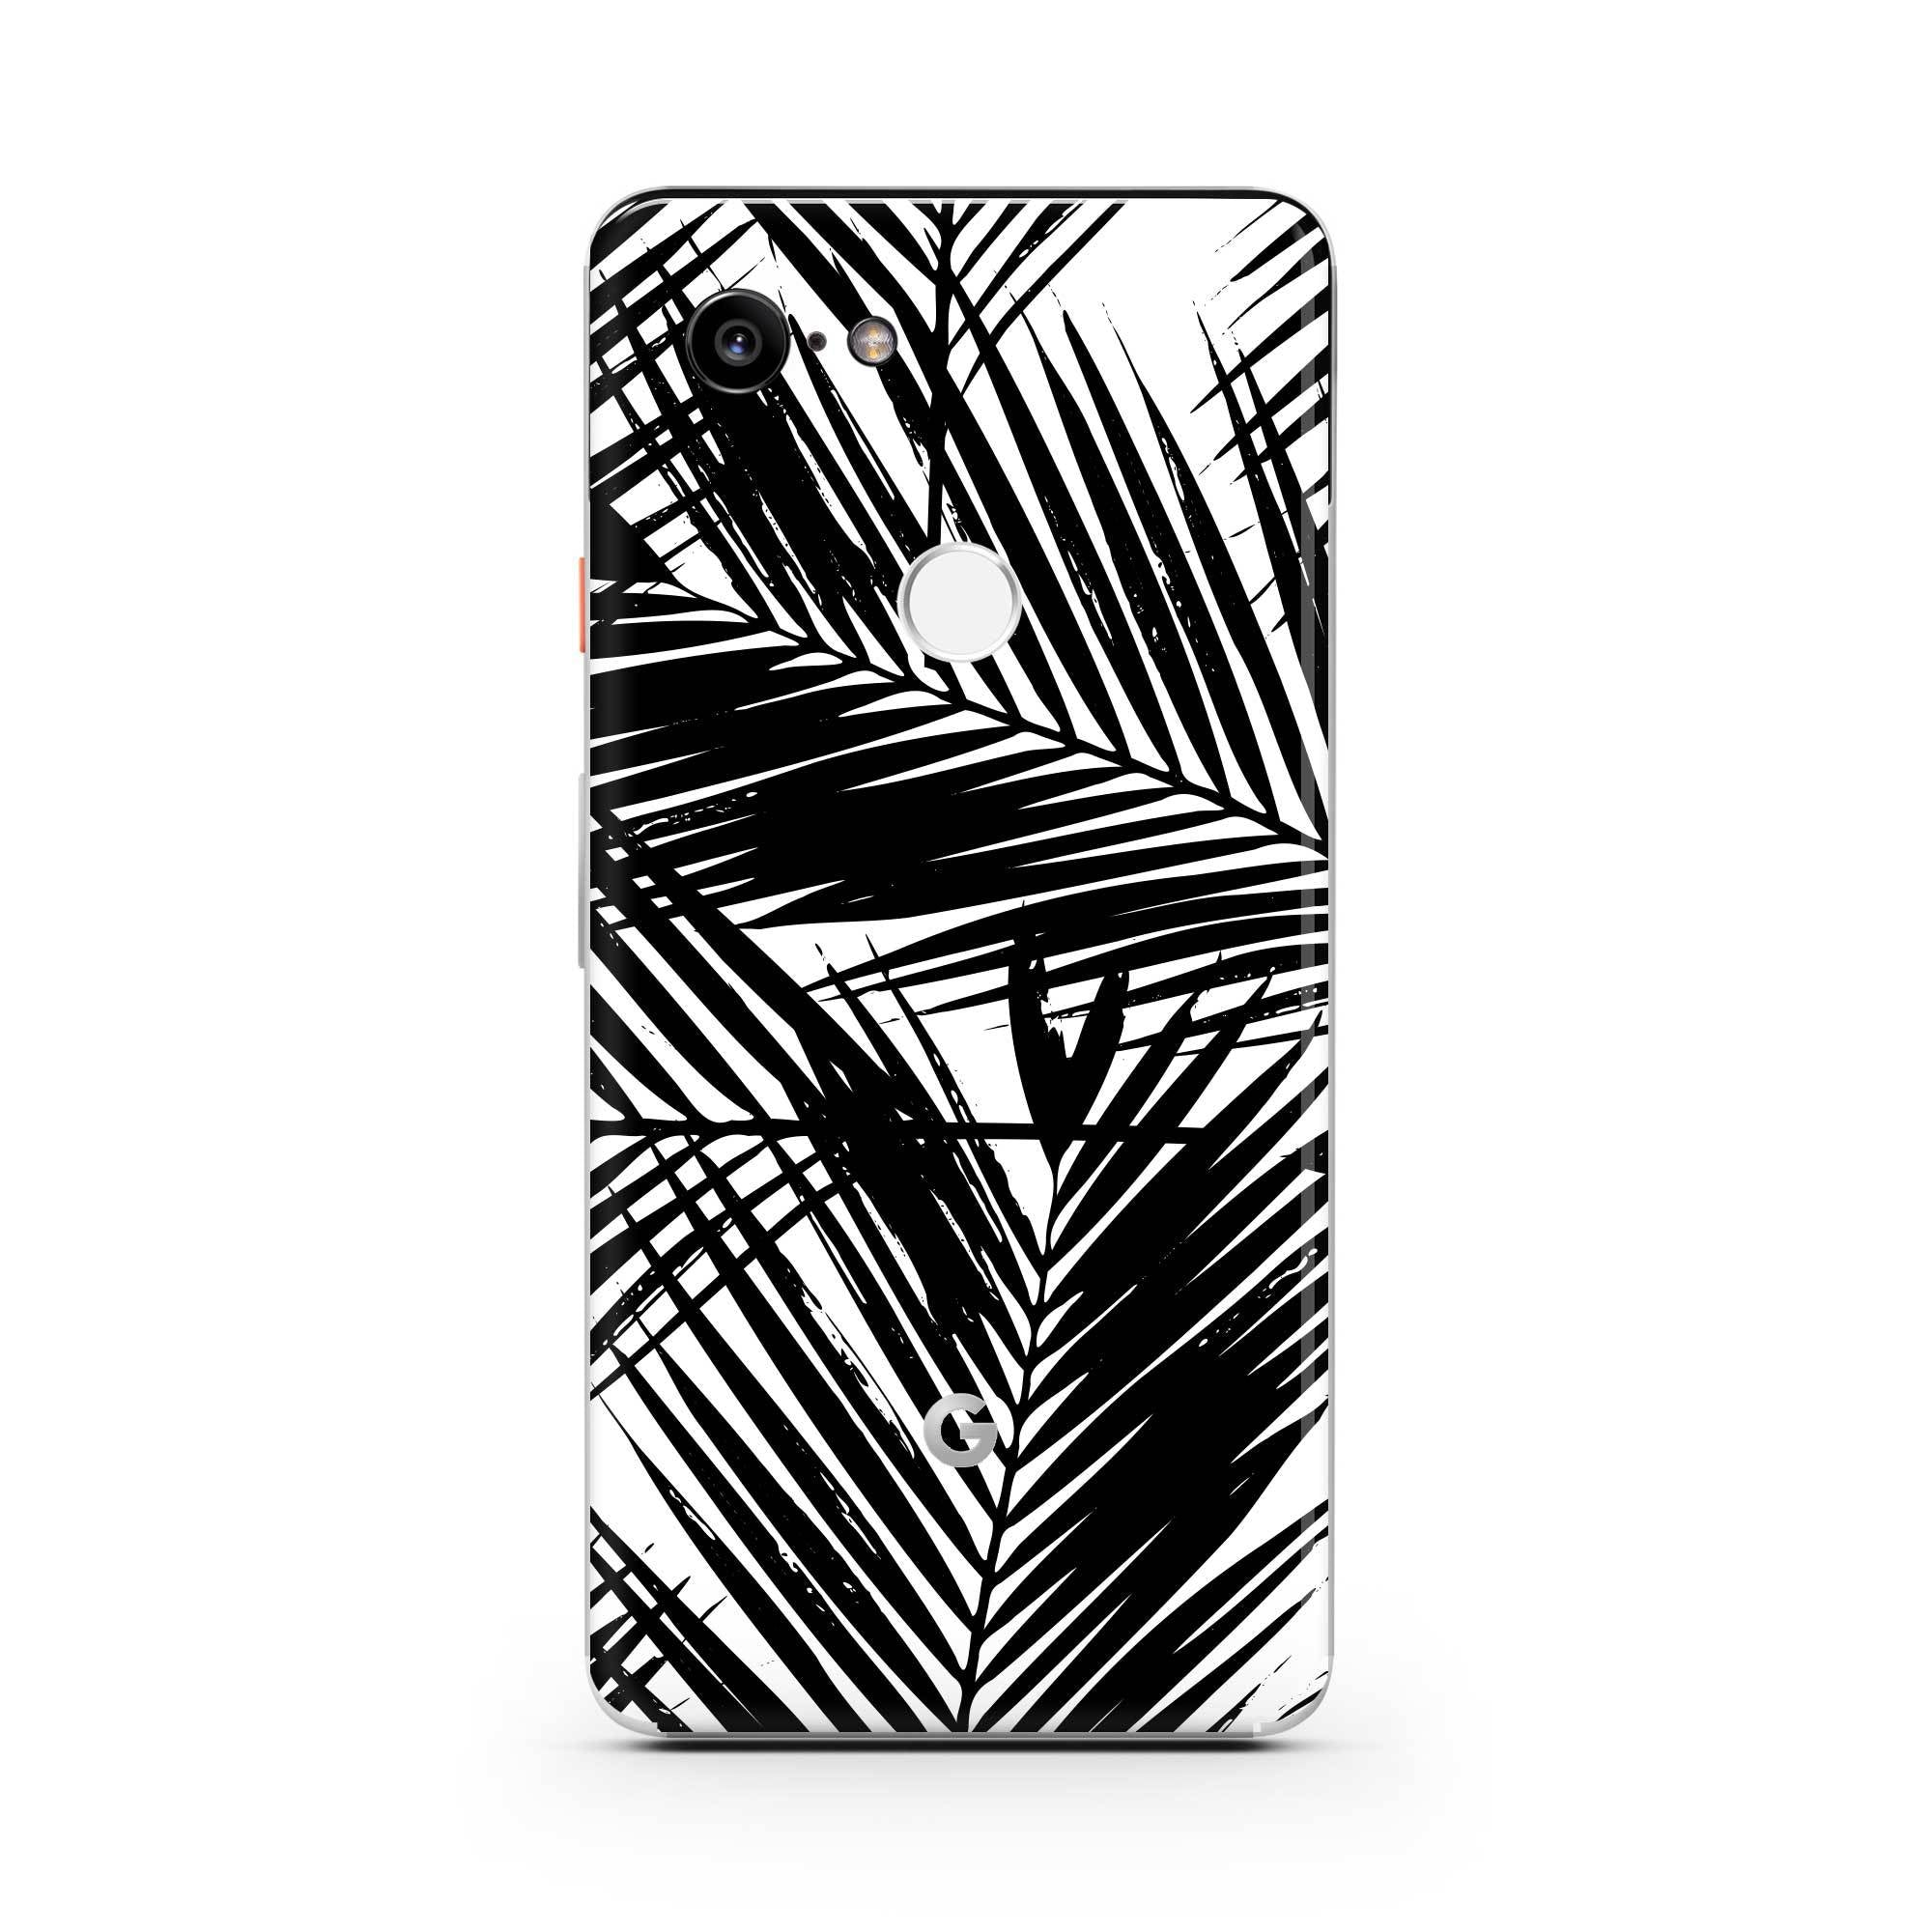 Palm Beach Pixel 3a Skin + Case